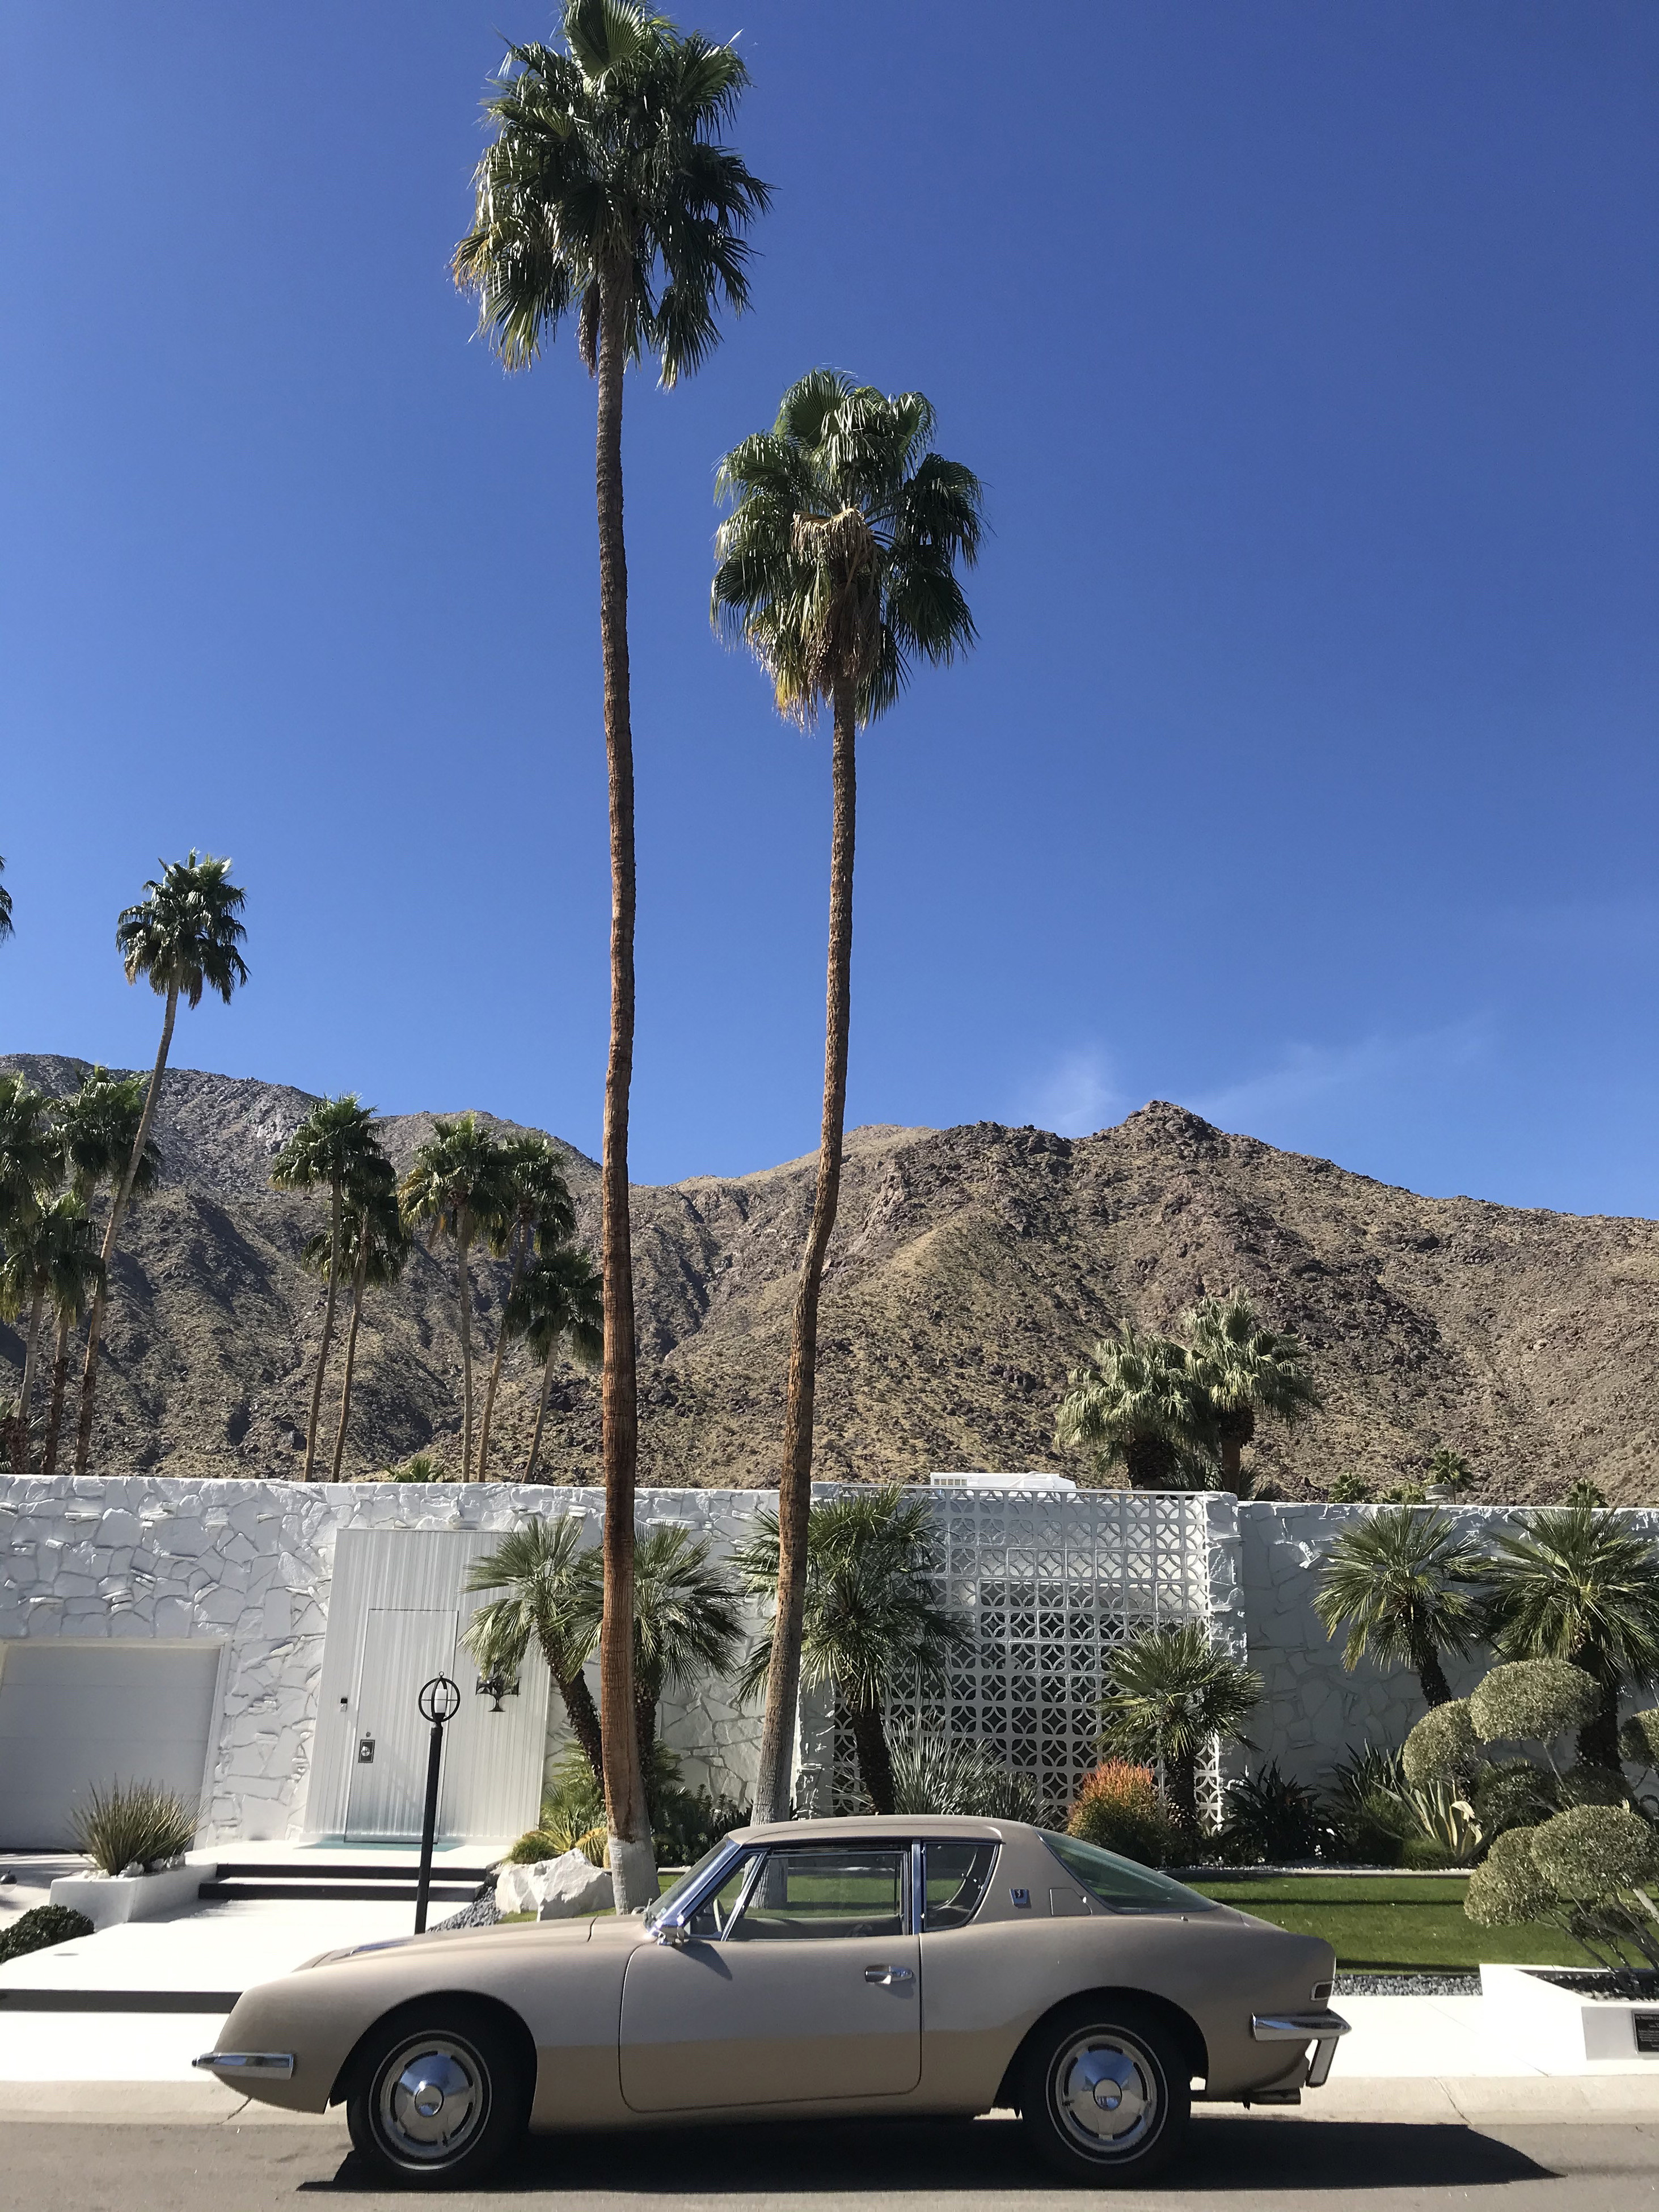 The Morse Home designed by architect Hal Levitt and featuring an Avanti Studebaker in Palm Springs, California on February 12, 2020.